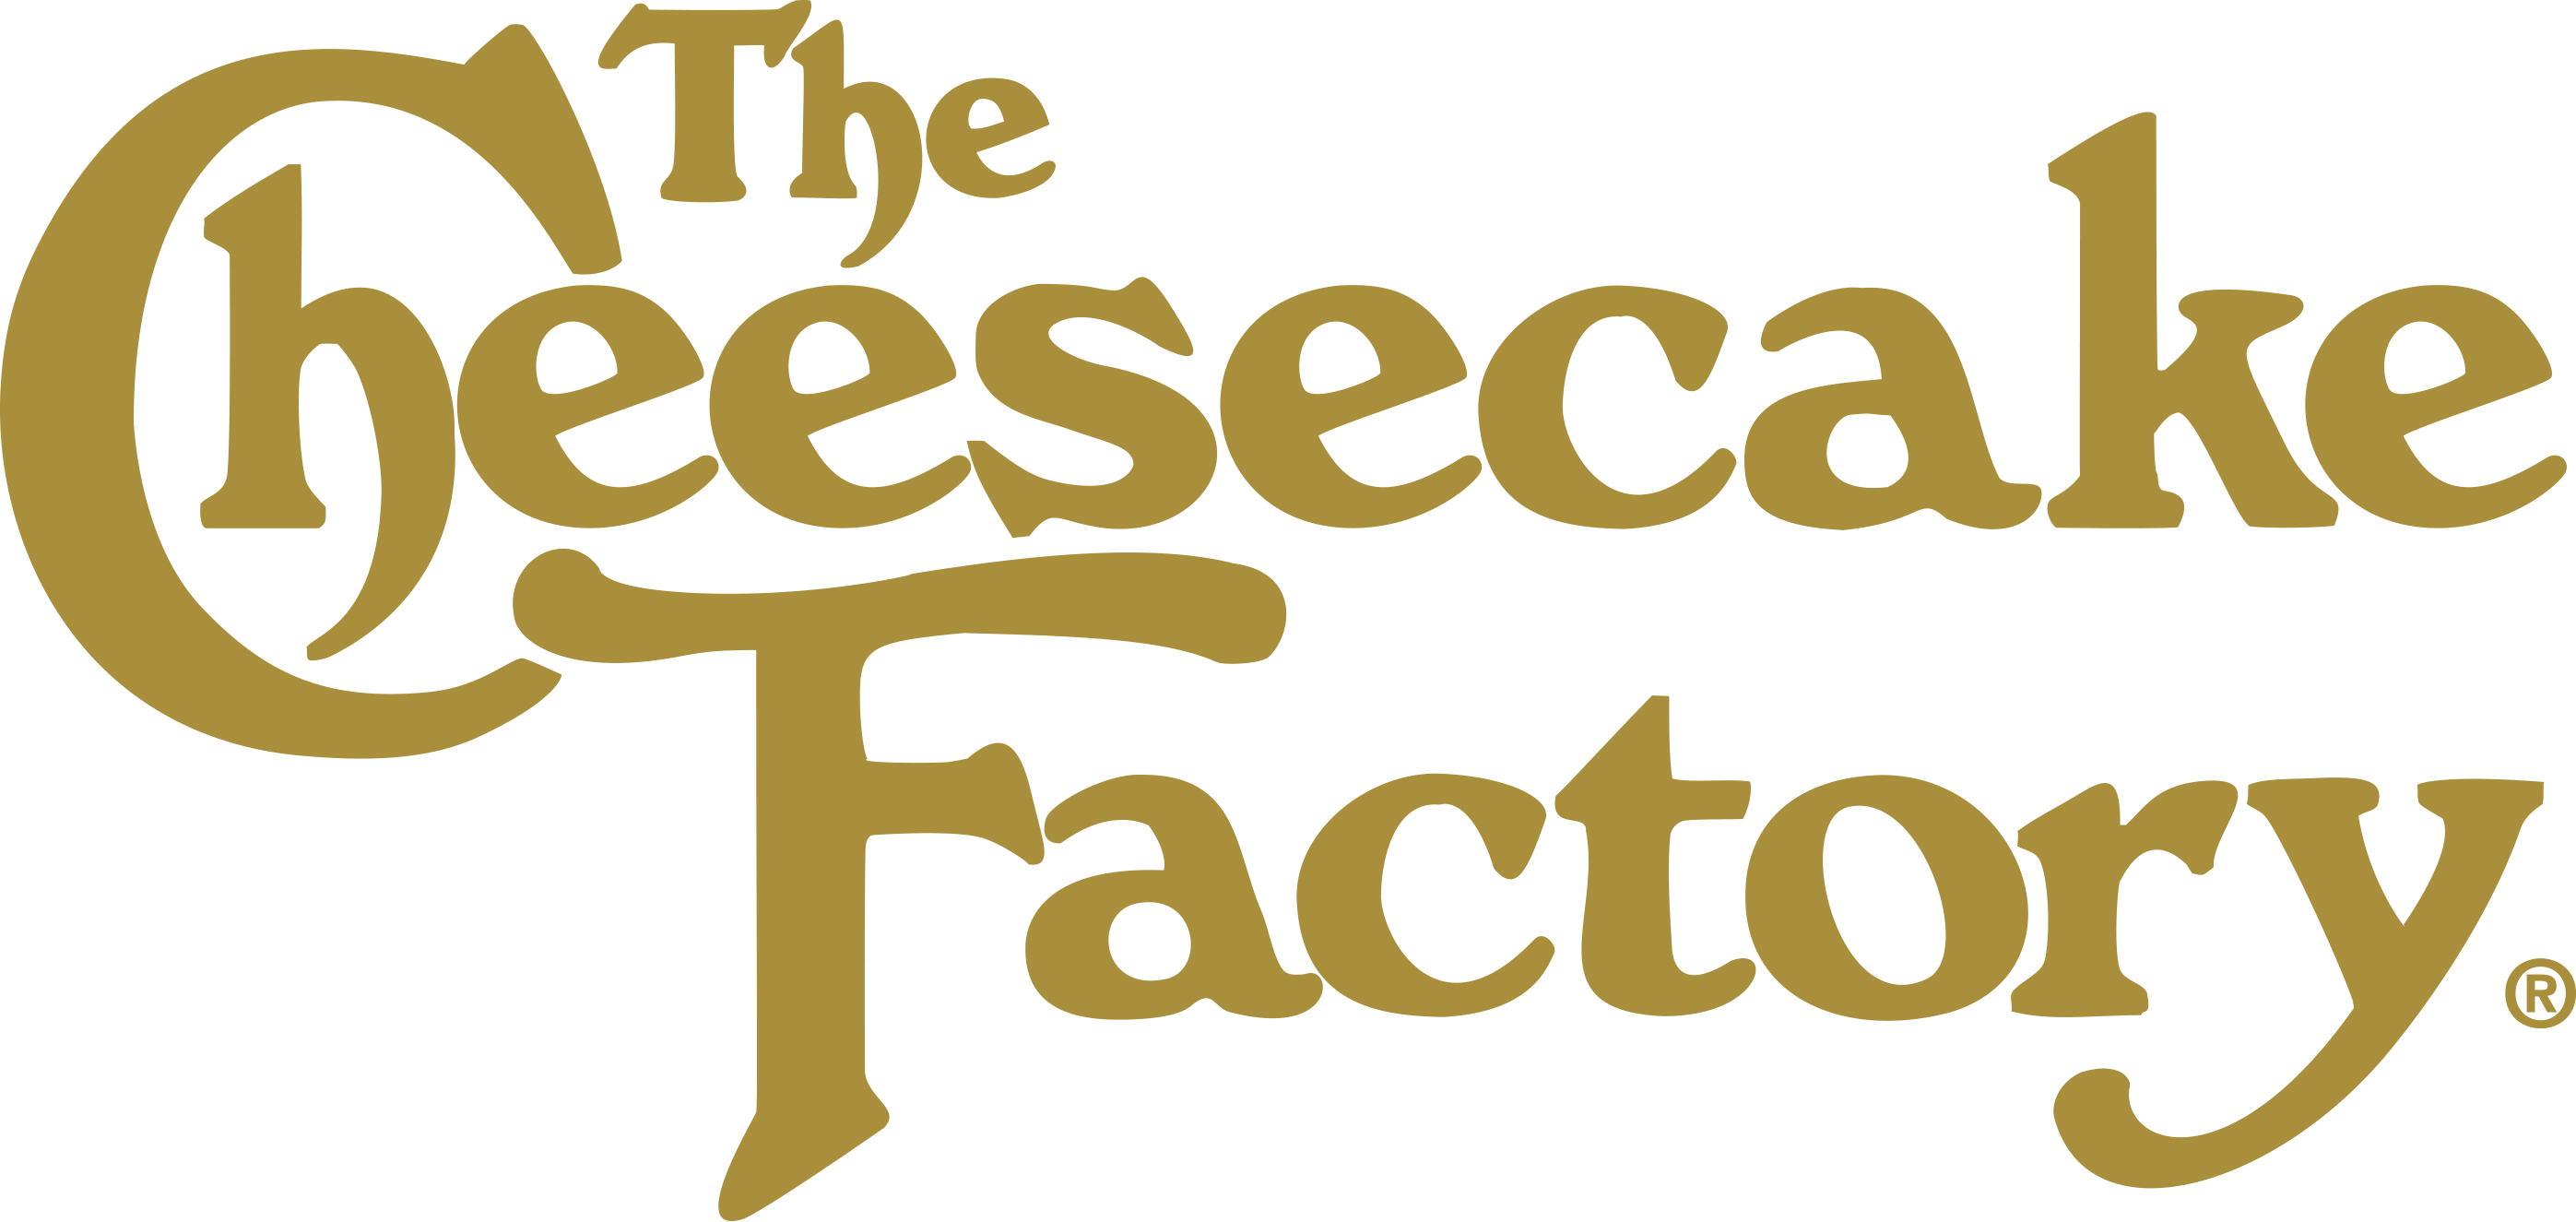 Business software used by. Cheesecake factory png picture royalty free